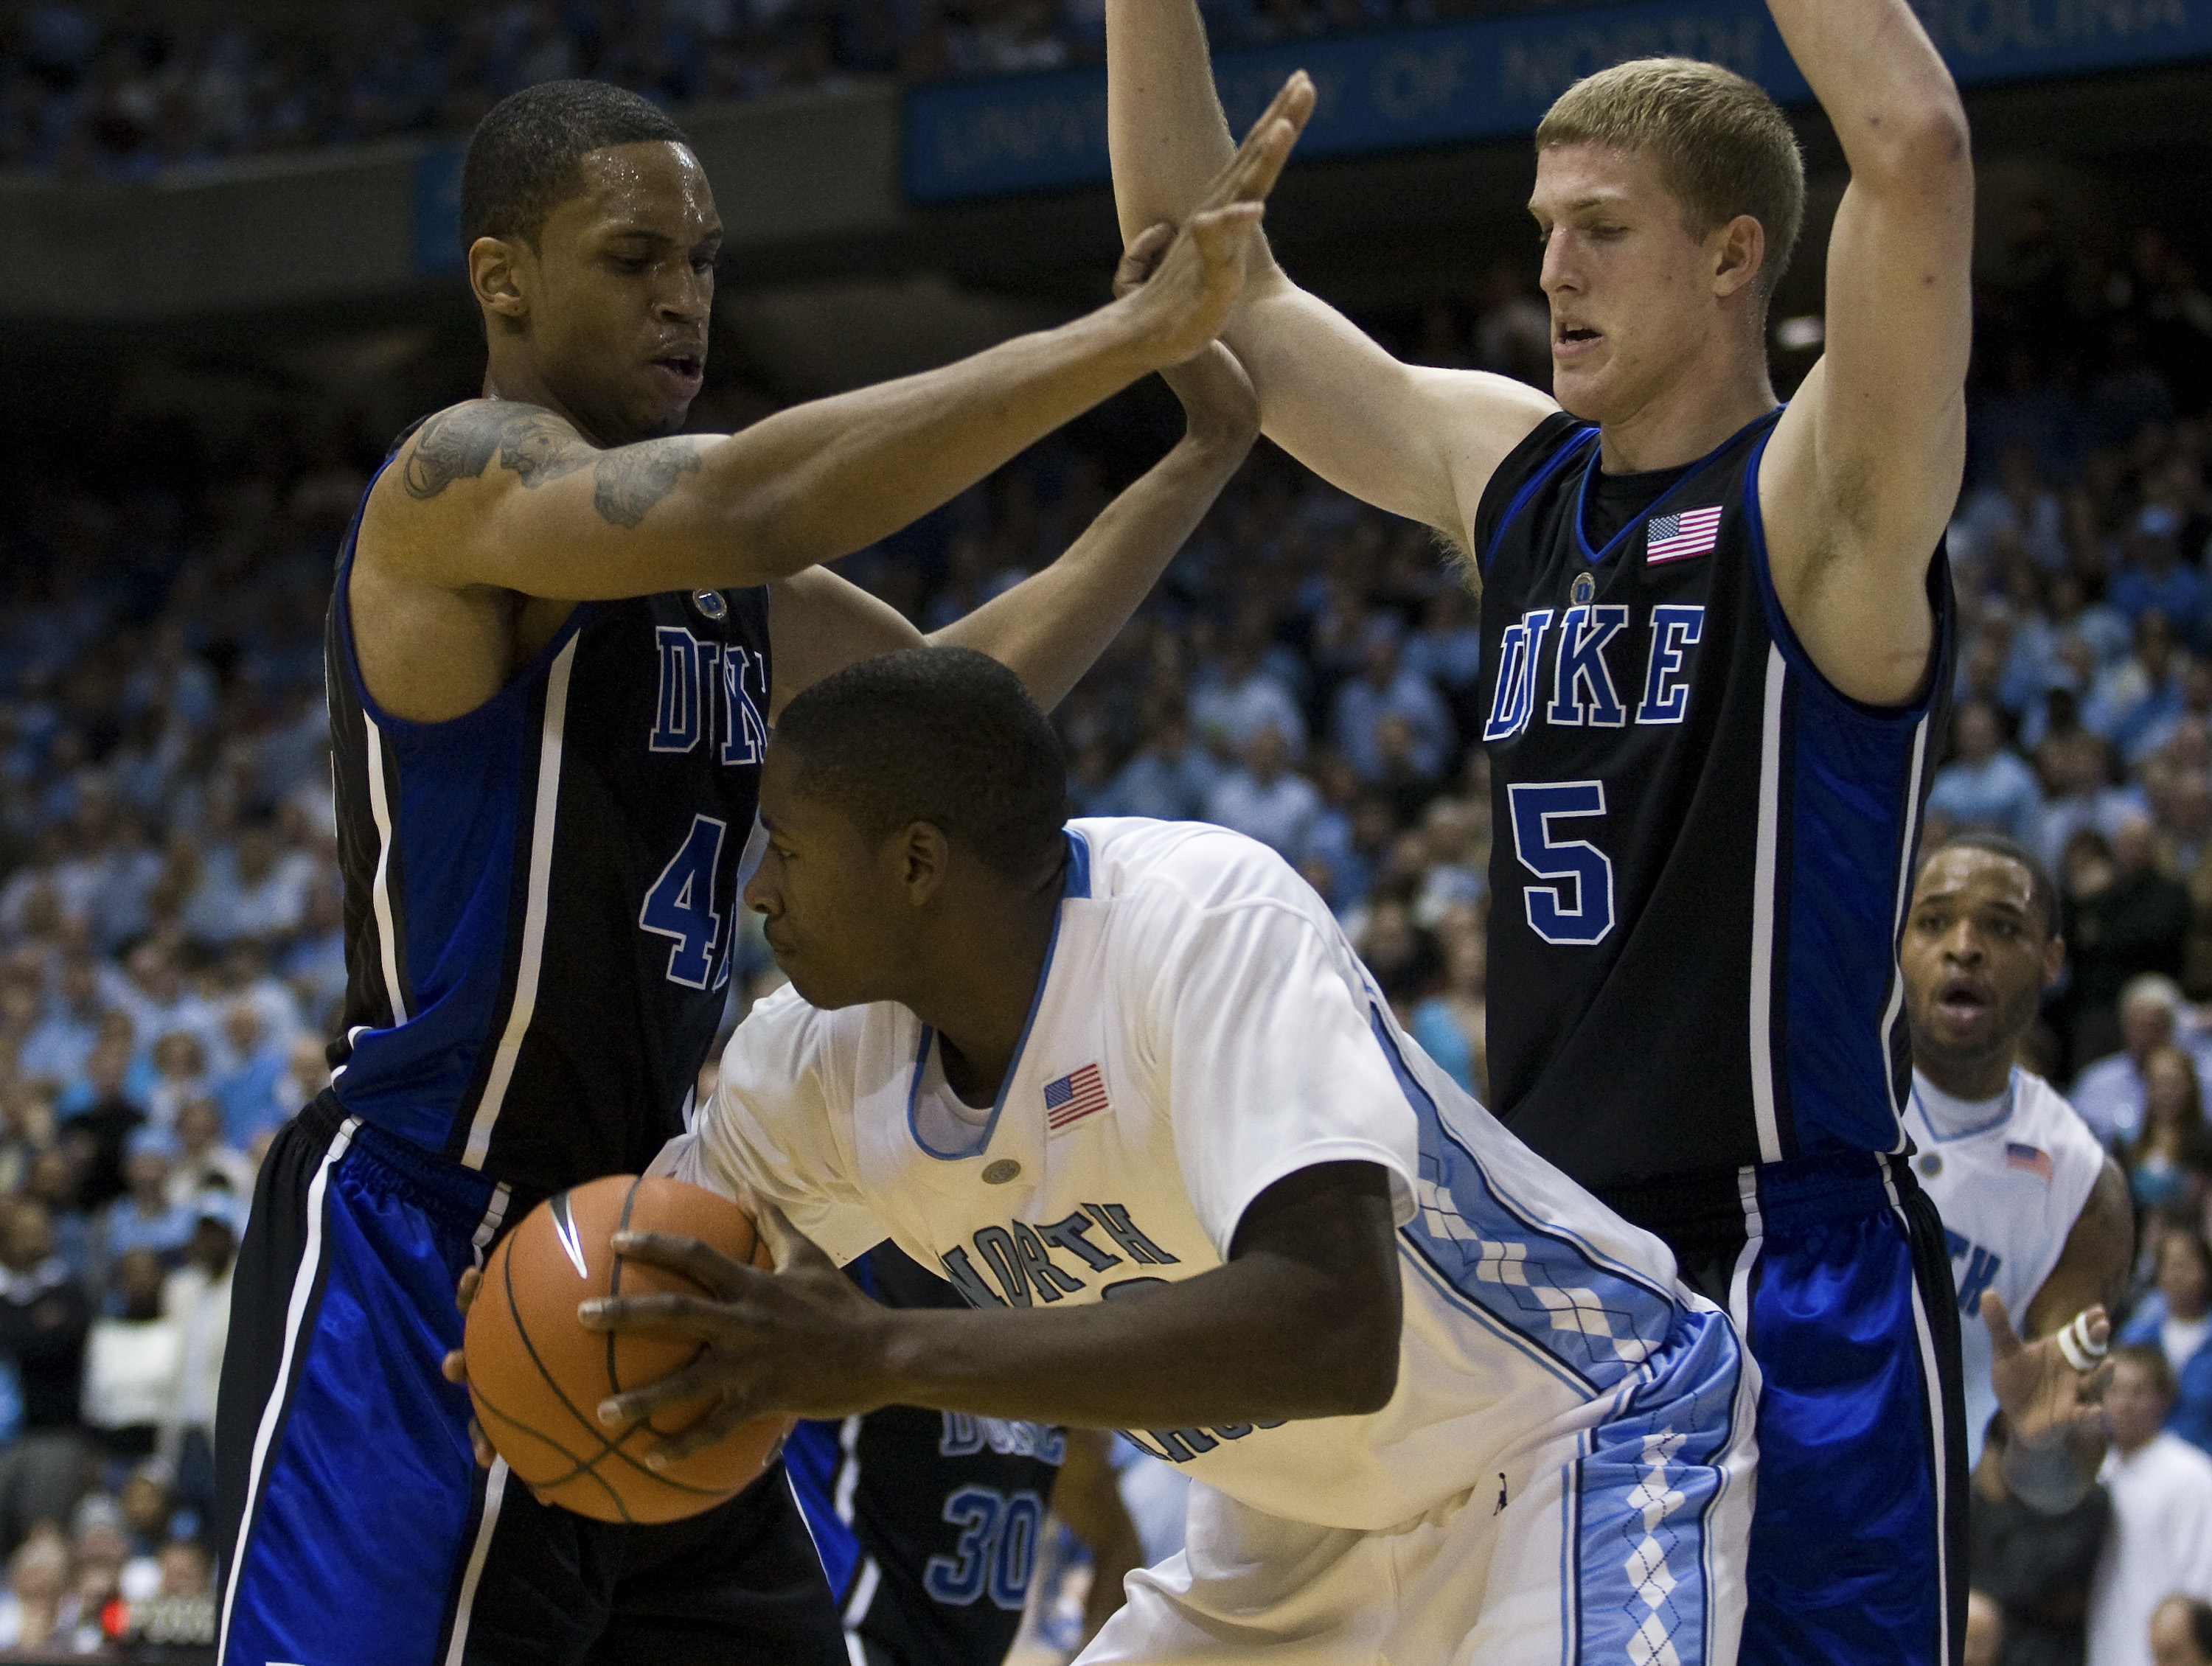 North Carolina PG Jalek Felton suspended from university